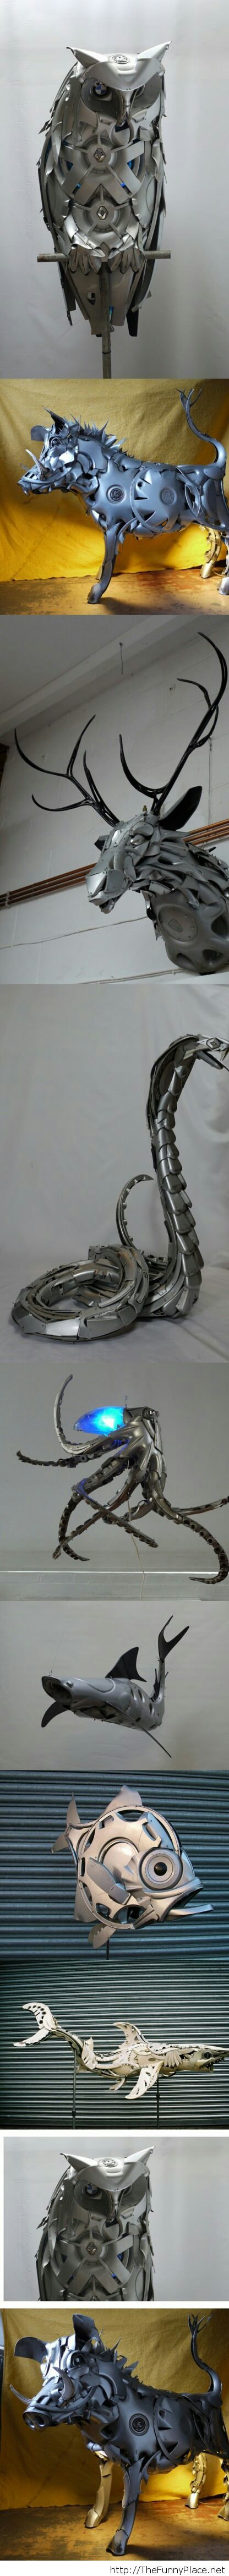 Sculptures made from car hubcapswheel